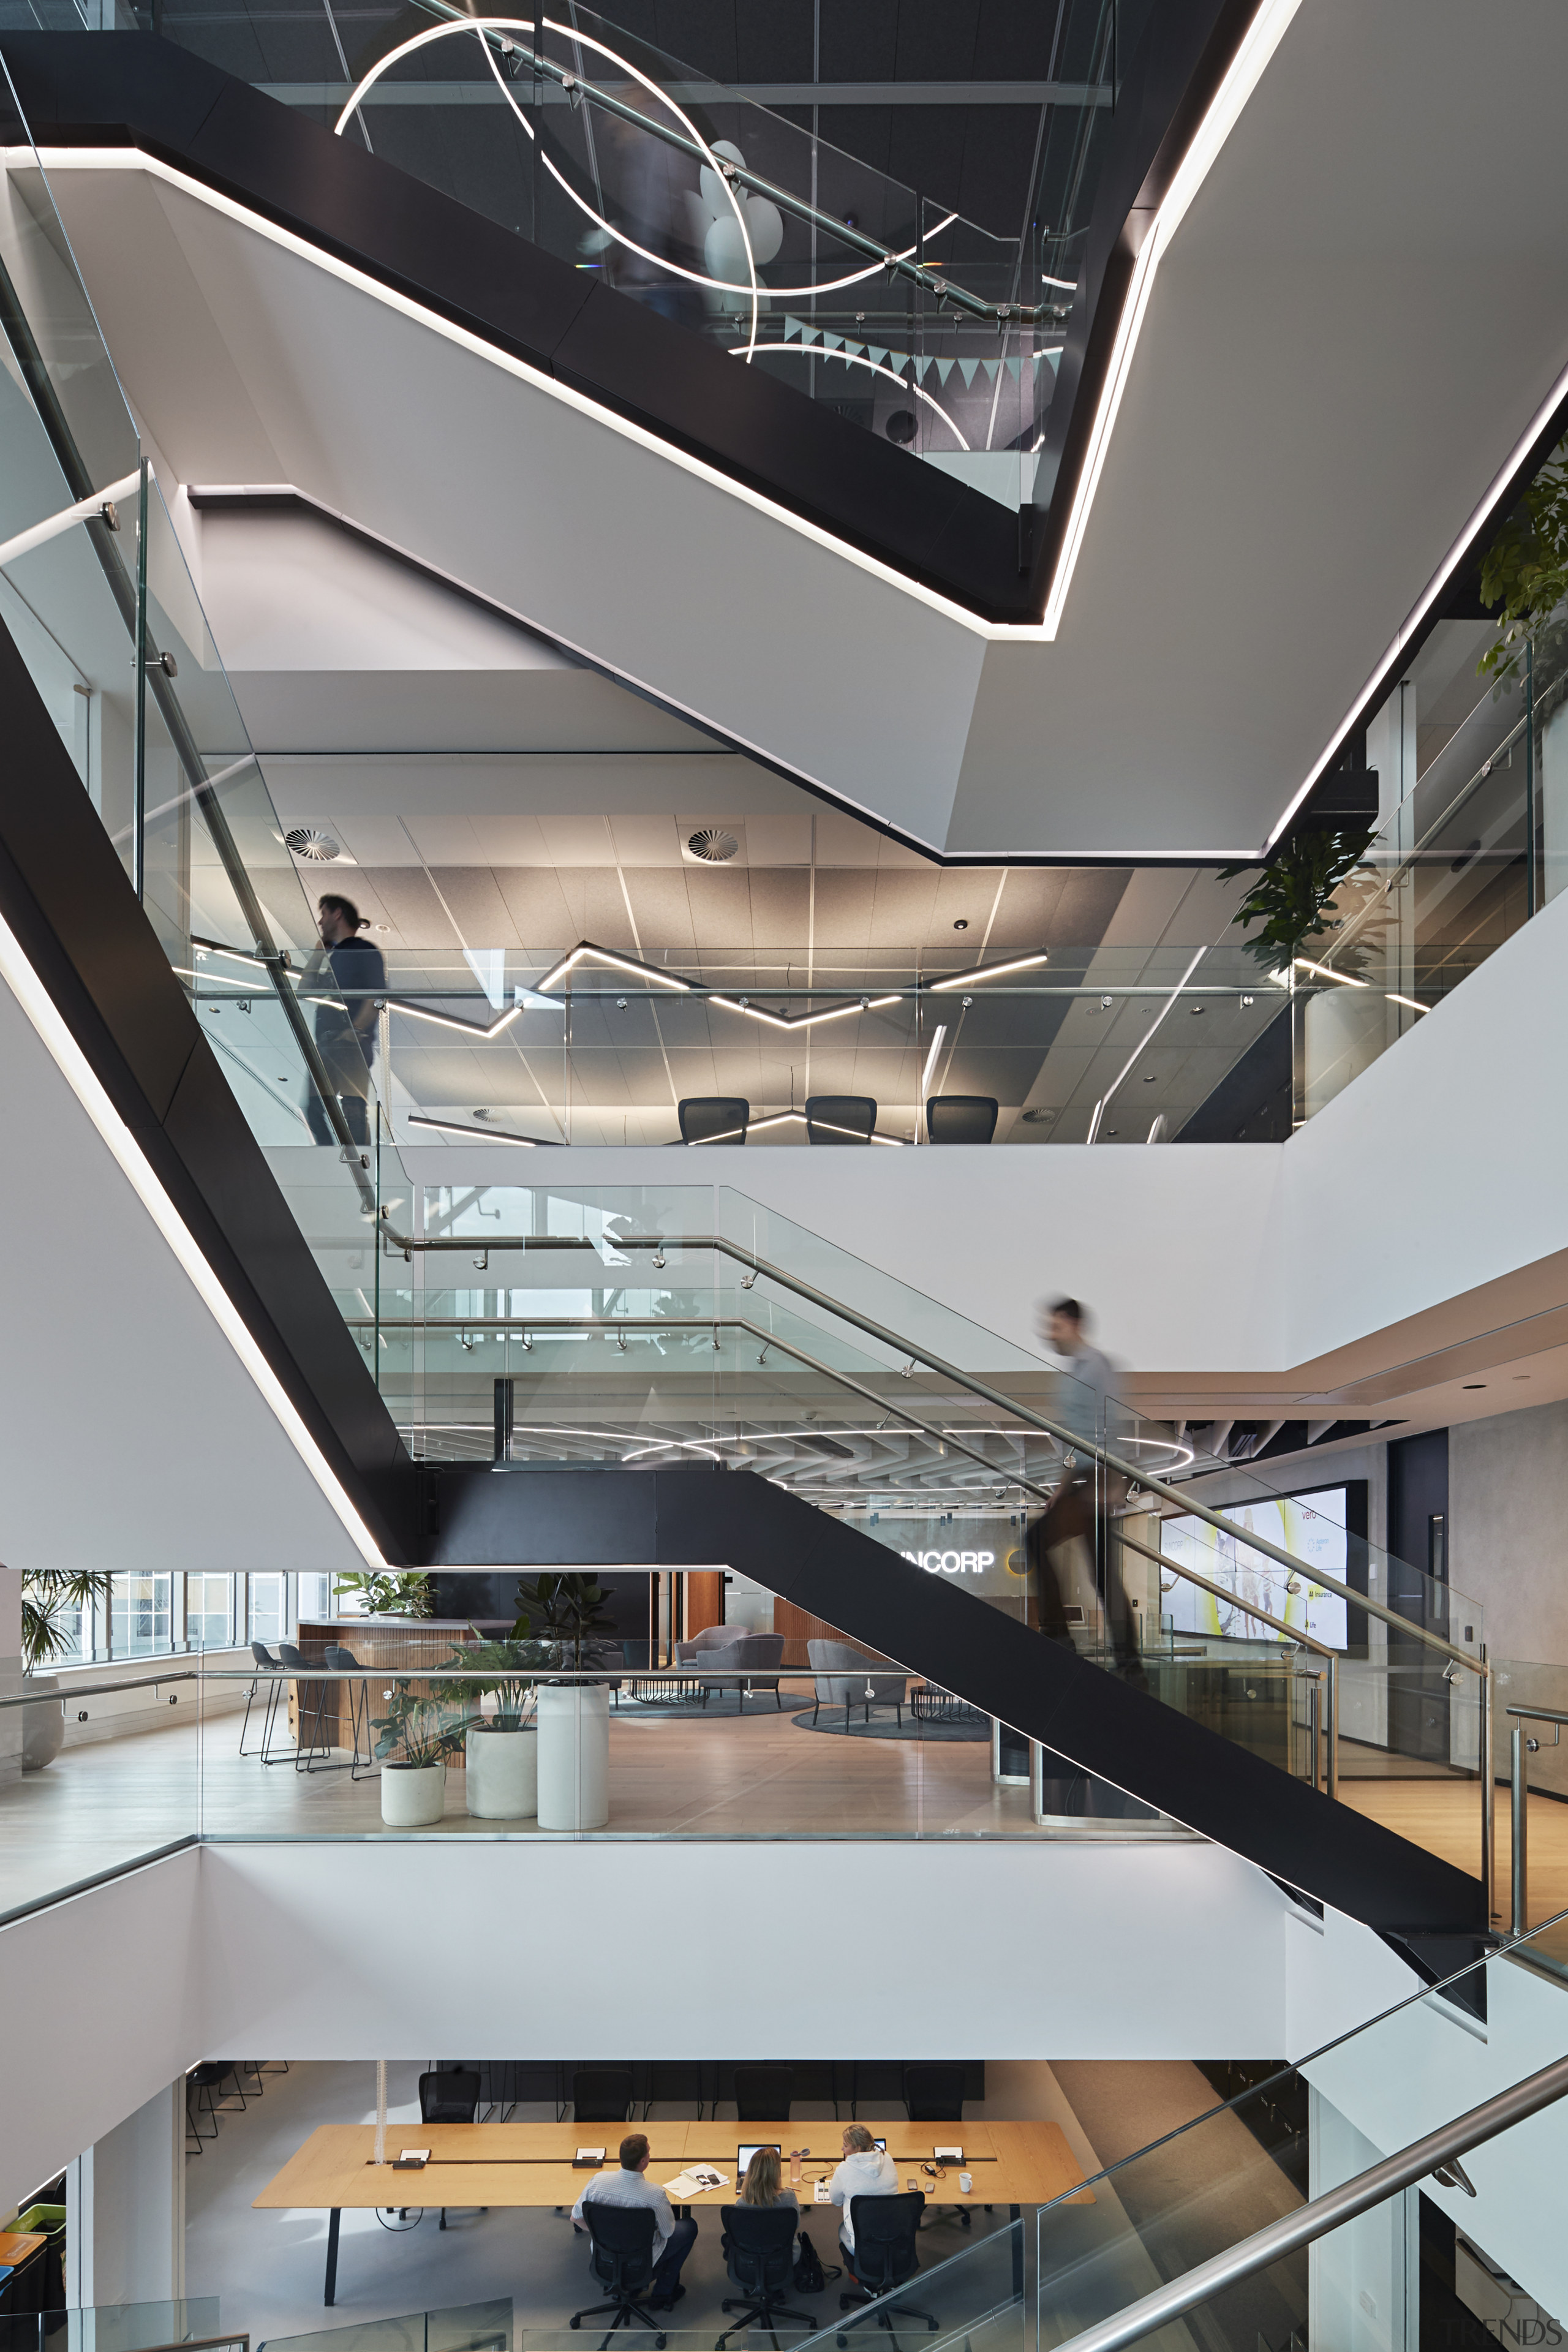 From the 13th floor public entry space, visitors architecture, building, ceiling, commercial building, daylighting, glass, handrail, interior design, lobby, mixed use, stairs, gray